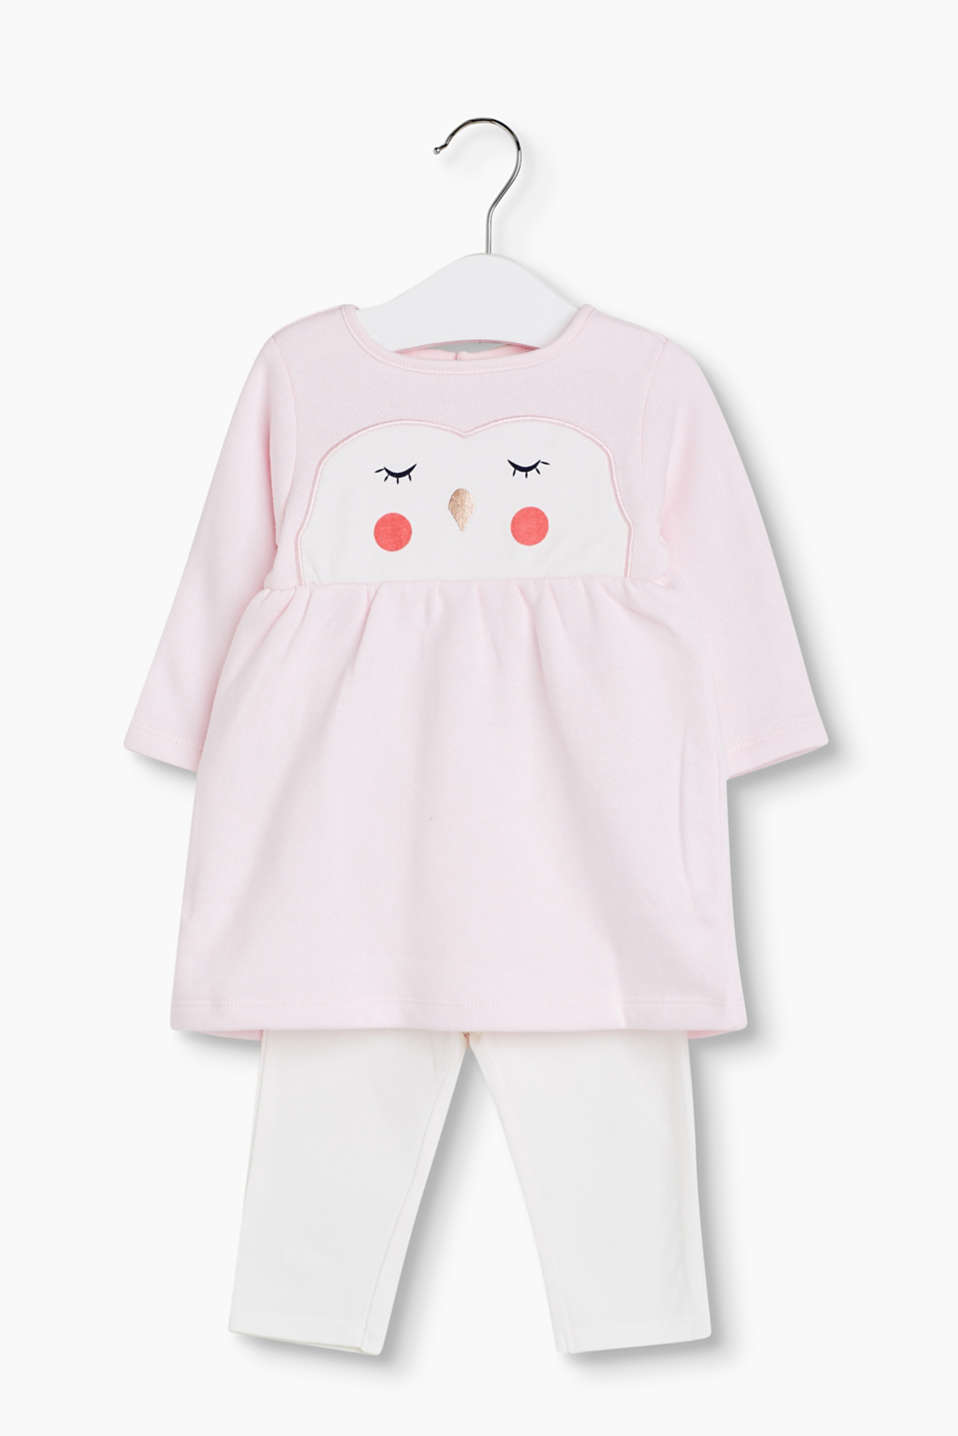 Set: Cute, soft, printed fleece dress with an owl face, made of 100% cotton, and stretch leggings